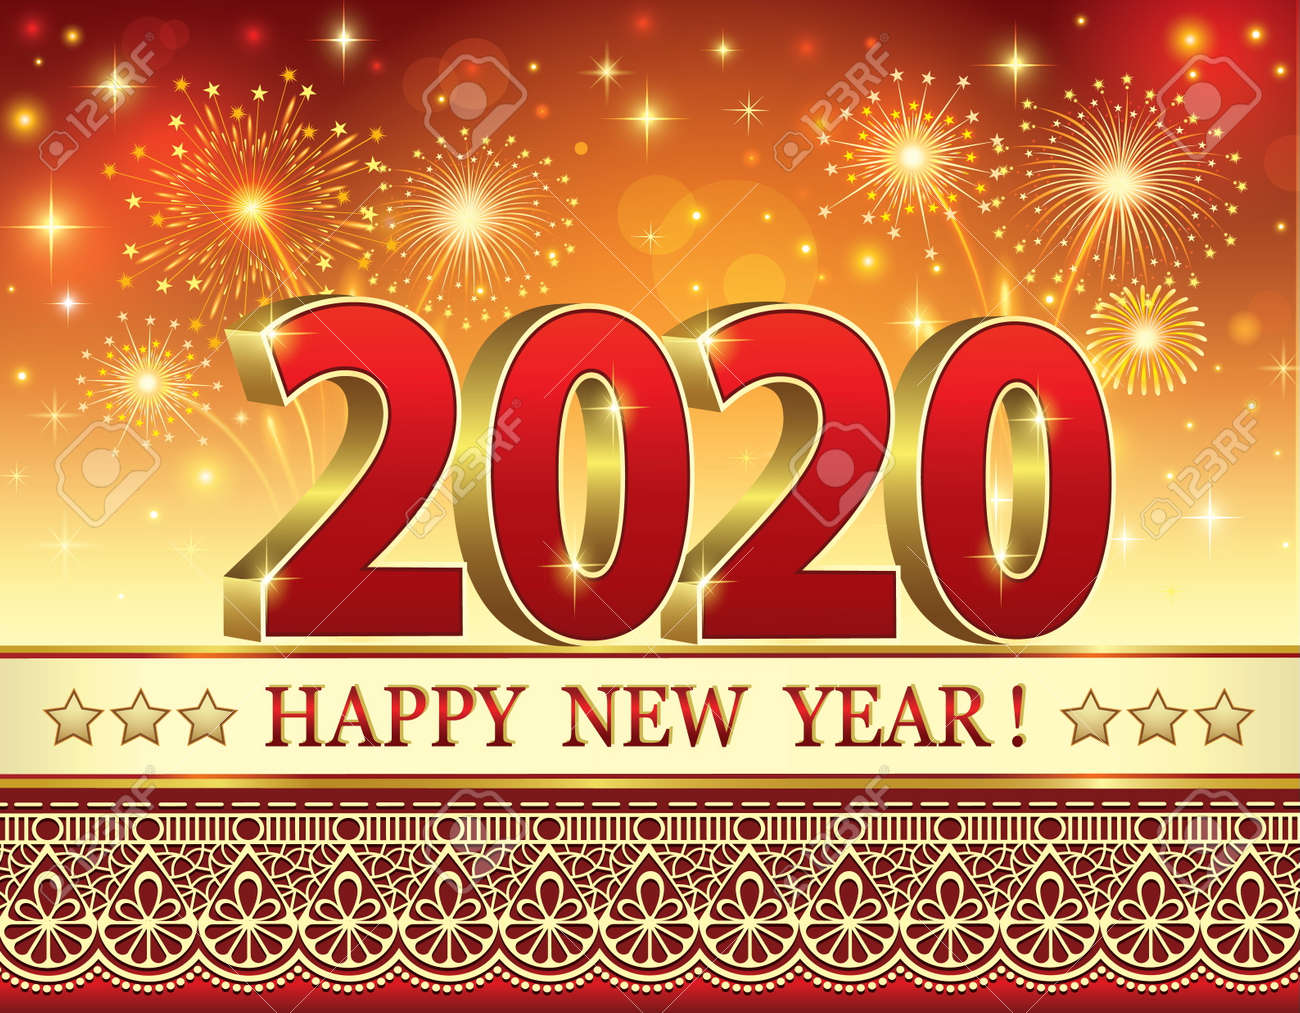 Christmas 2020.Happy New Year And Merry Christmas 2020 Vector Illustration